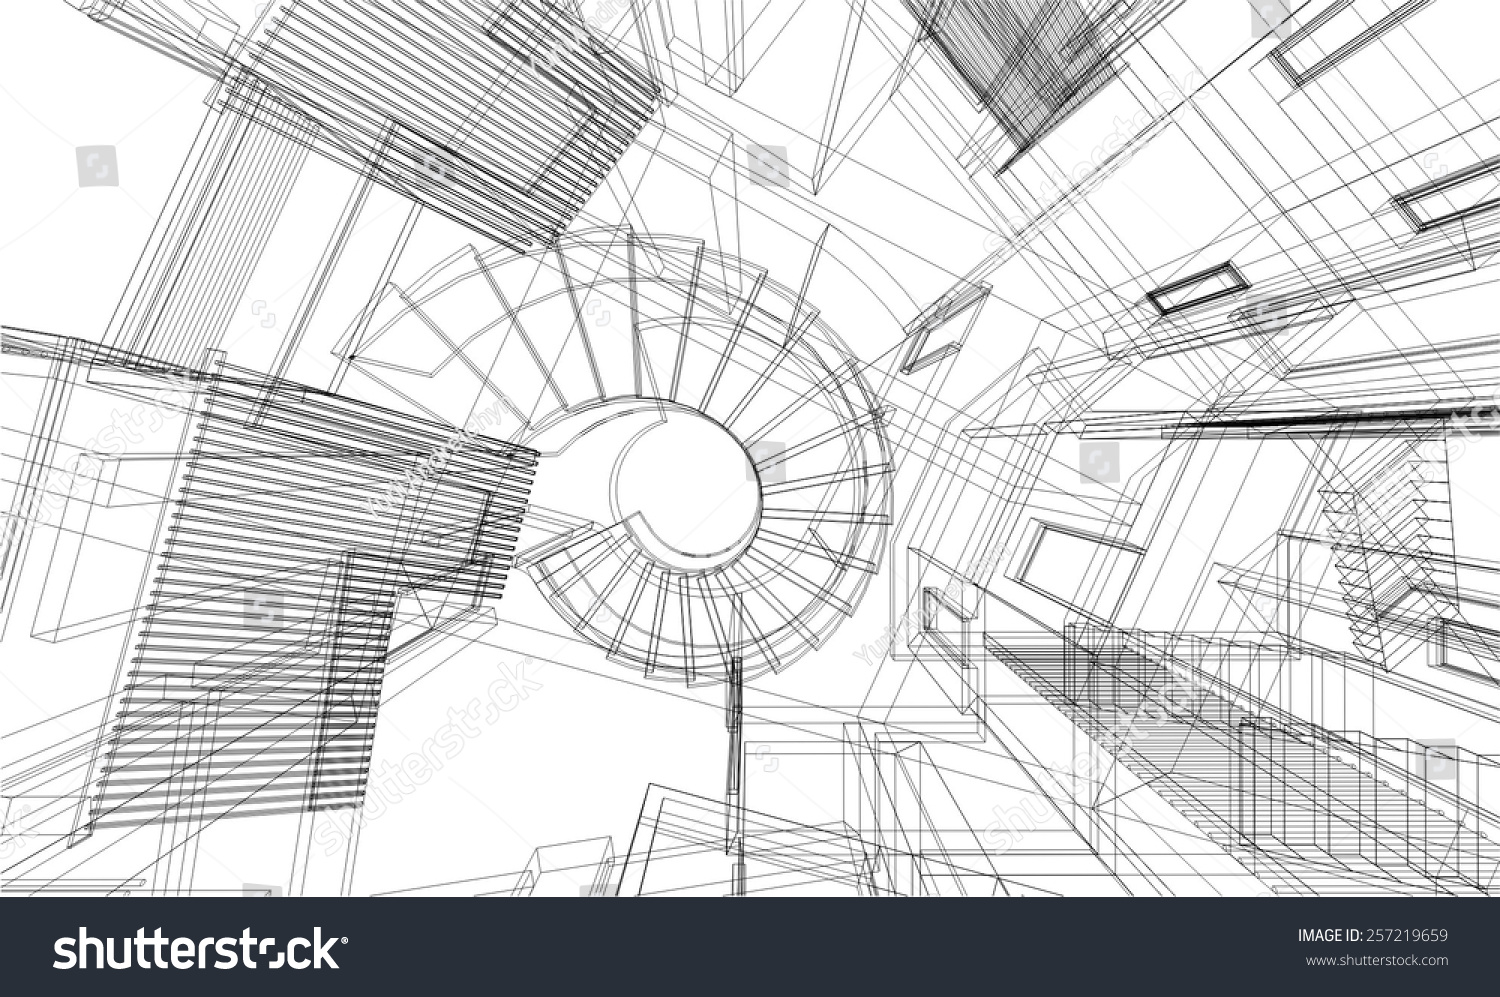 Architectural Drawing Building wonderful architectural drawing building drawings house on stilts